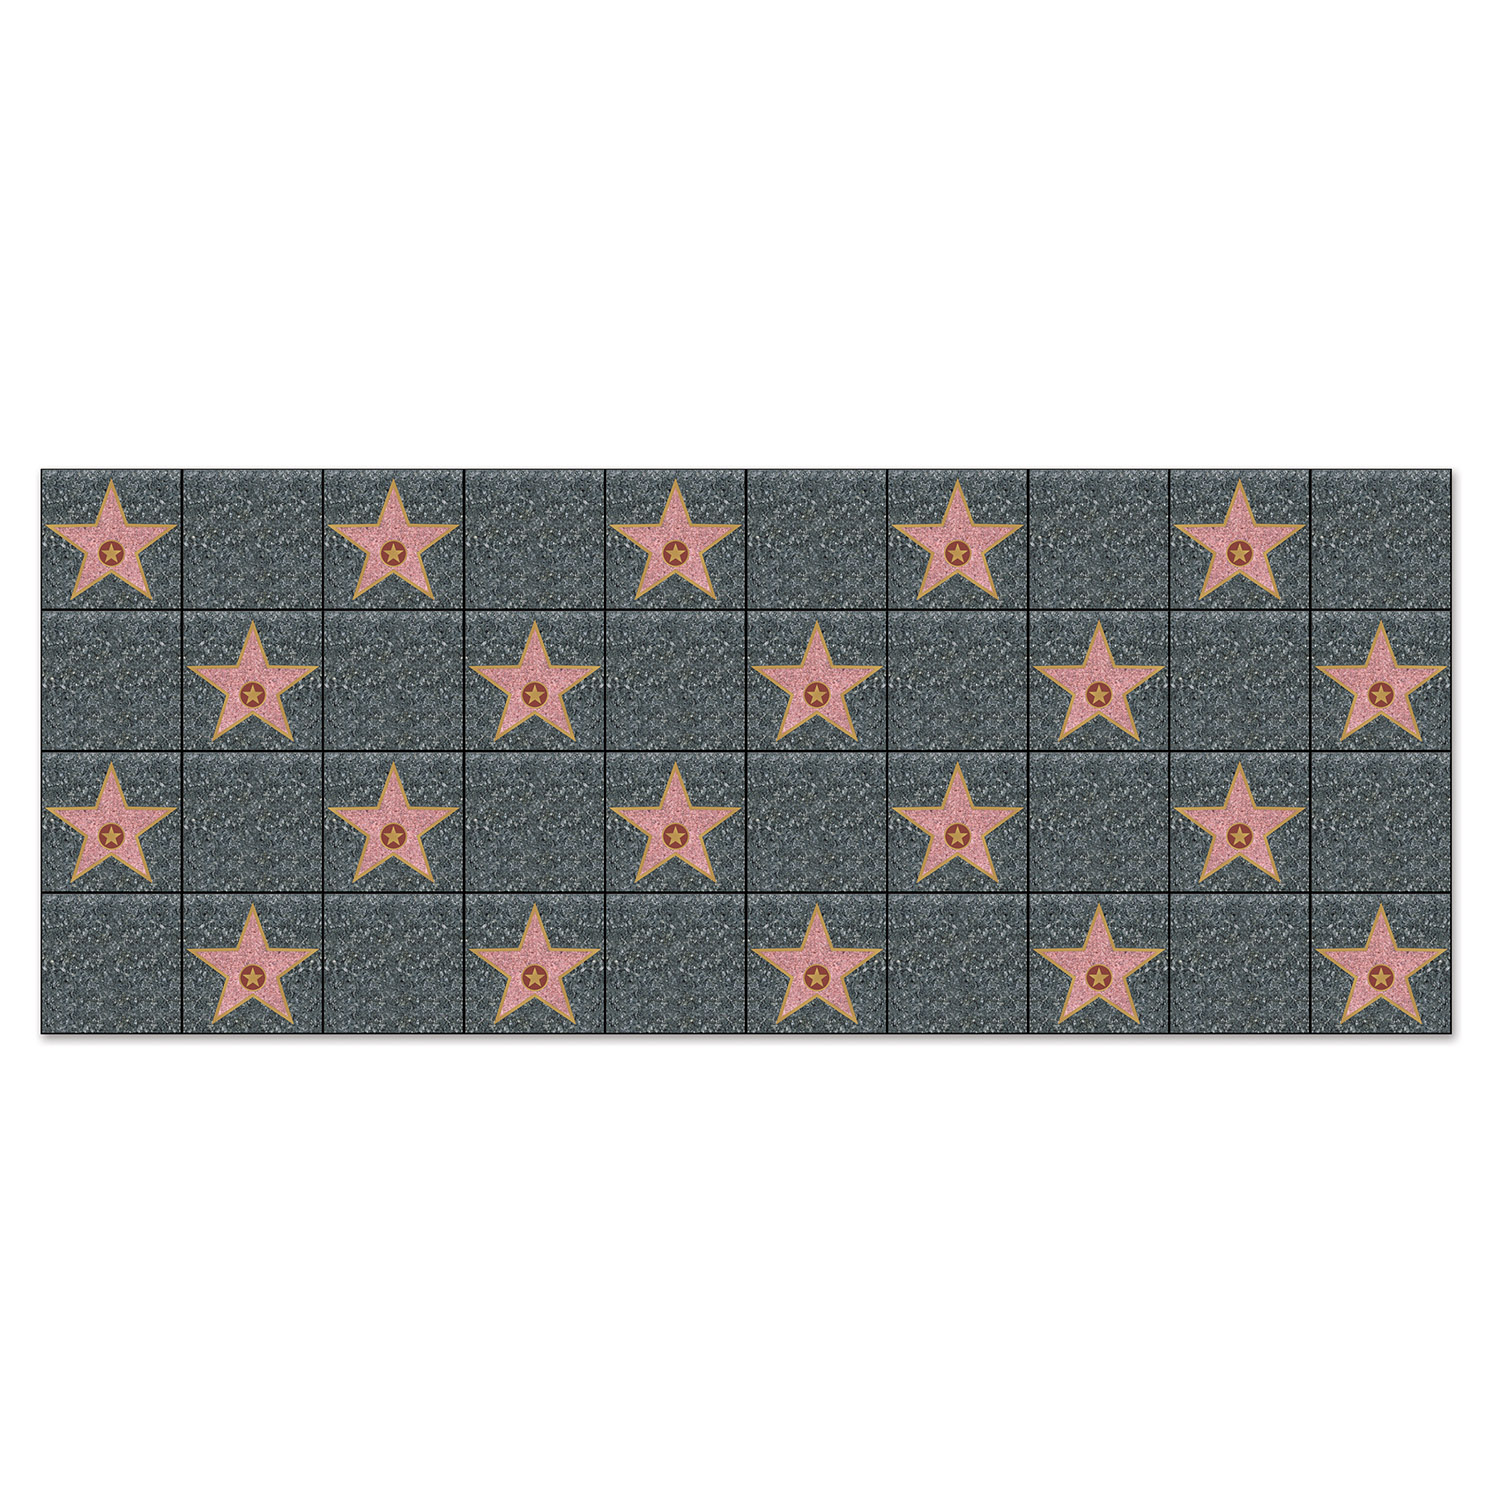 """Star"" Backdrop (Pack of 6) Backdrop, Background, Wall hanging, Awards Night, Hollywood themed event, Stars, Gold, New Years Eve, Wholesale party supplies, Inexpensive party decor, Bulk packs, Cheap, Budget"